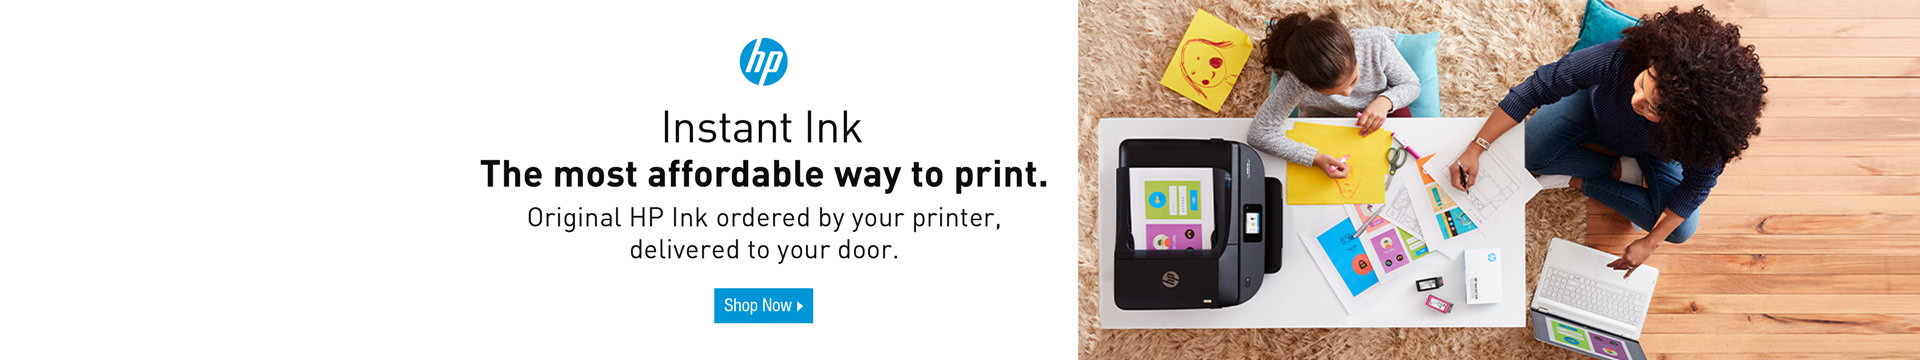 The most affordable way to print